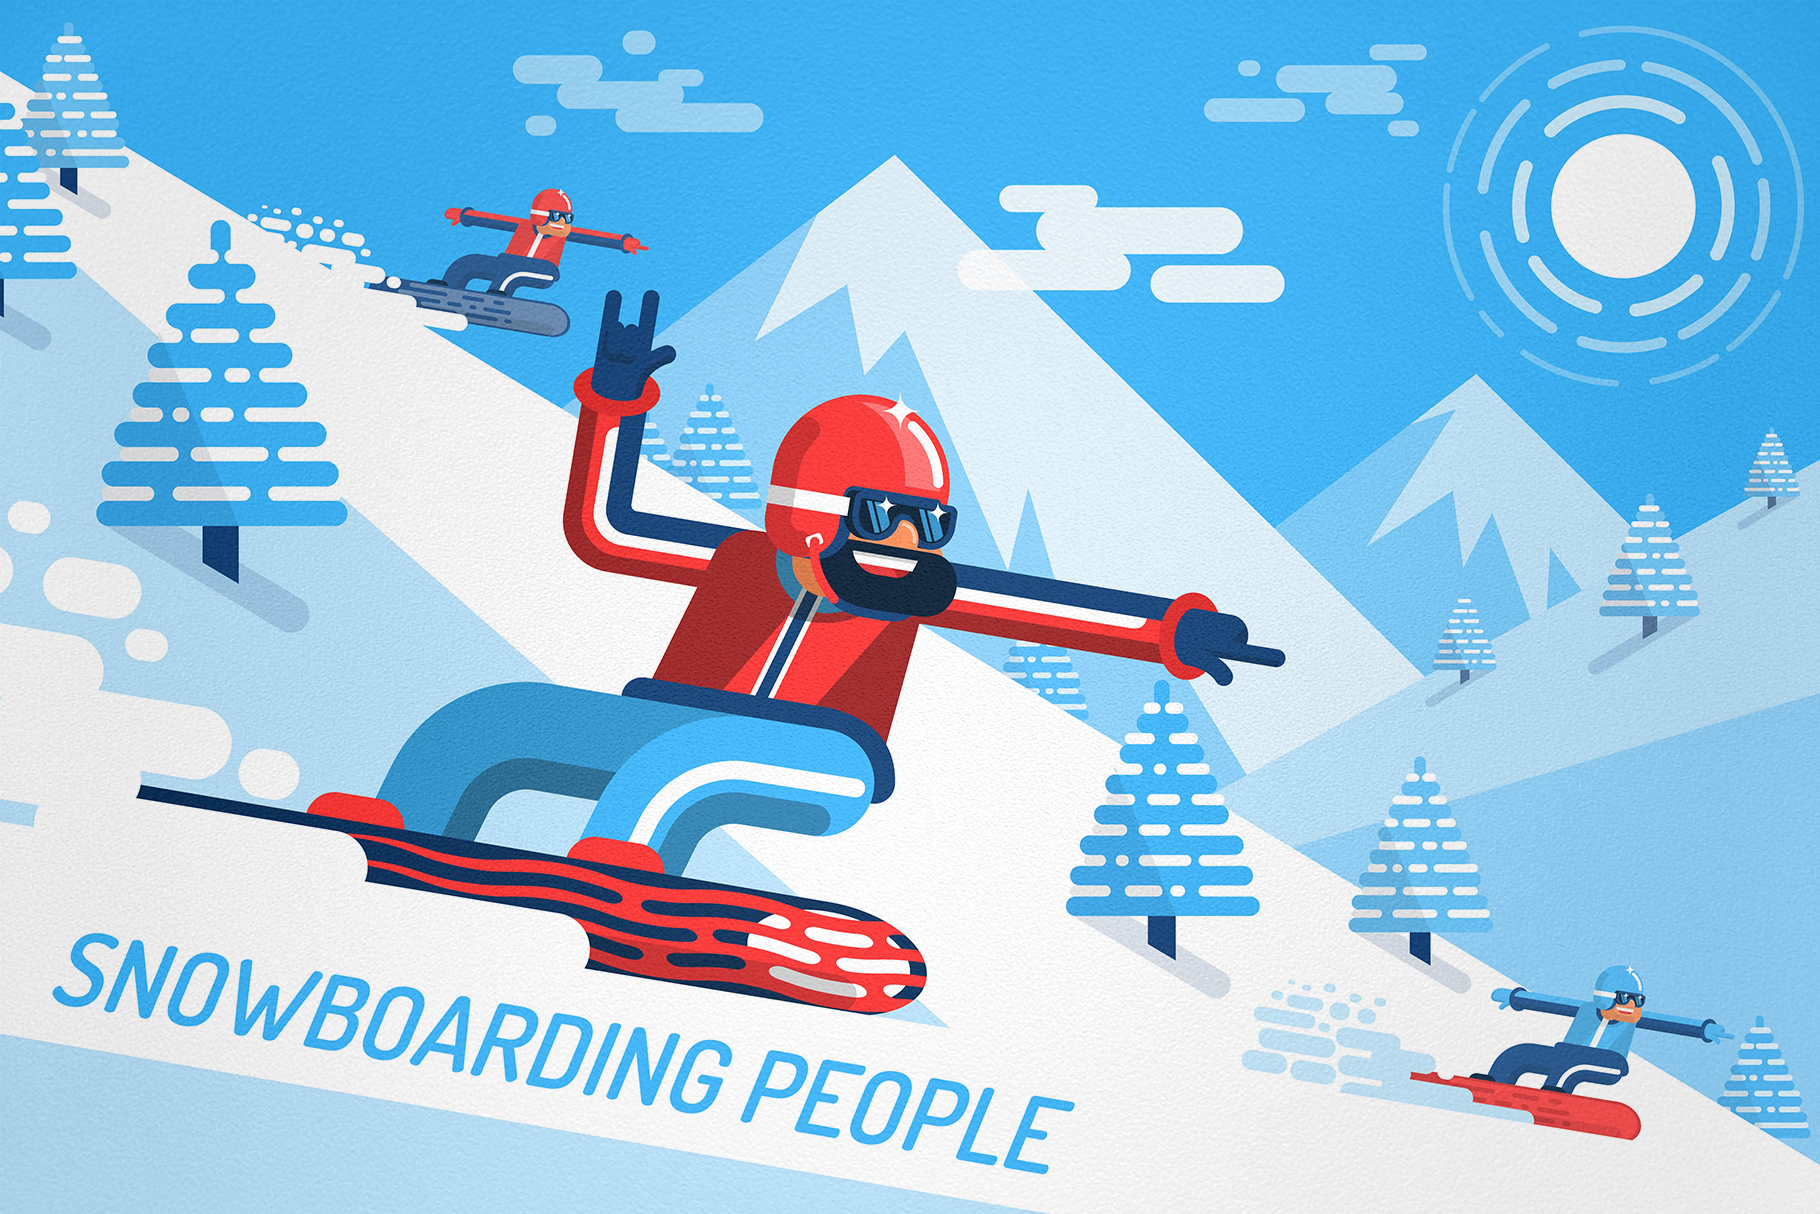 Snowboarding People example image 5